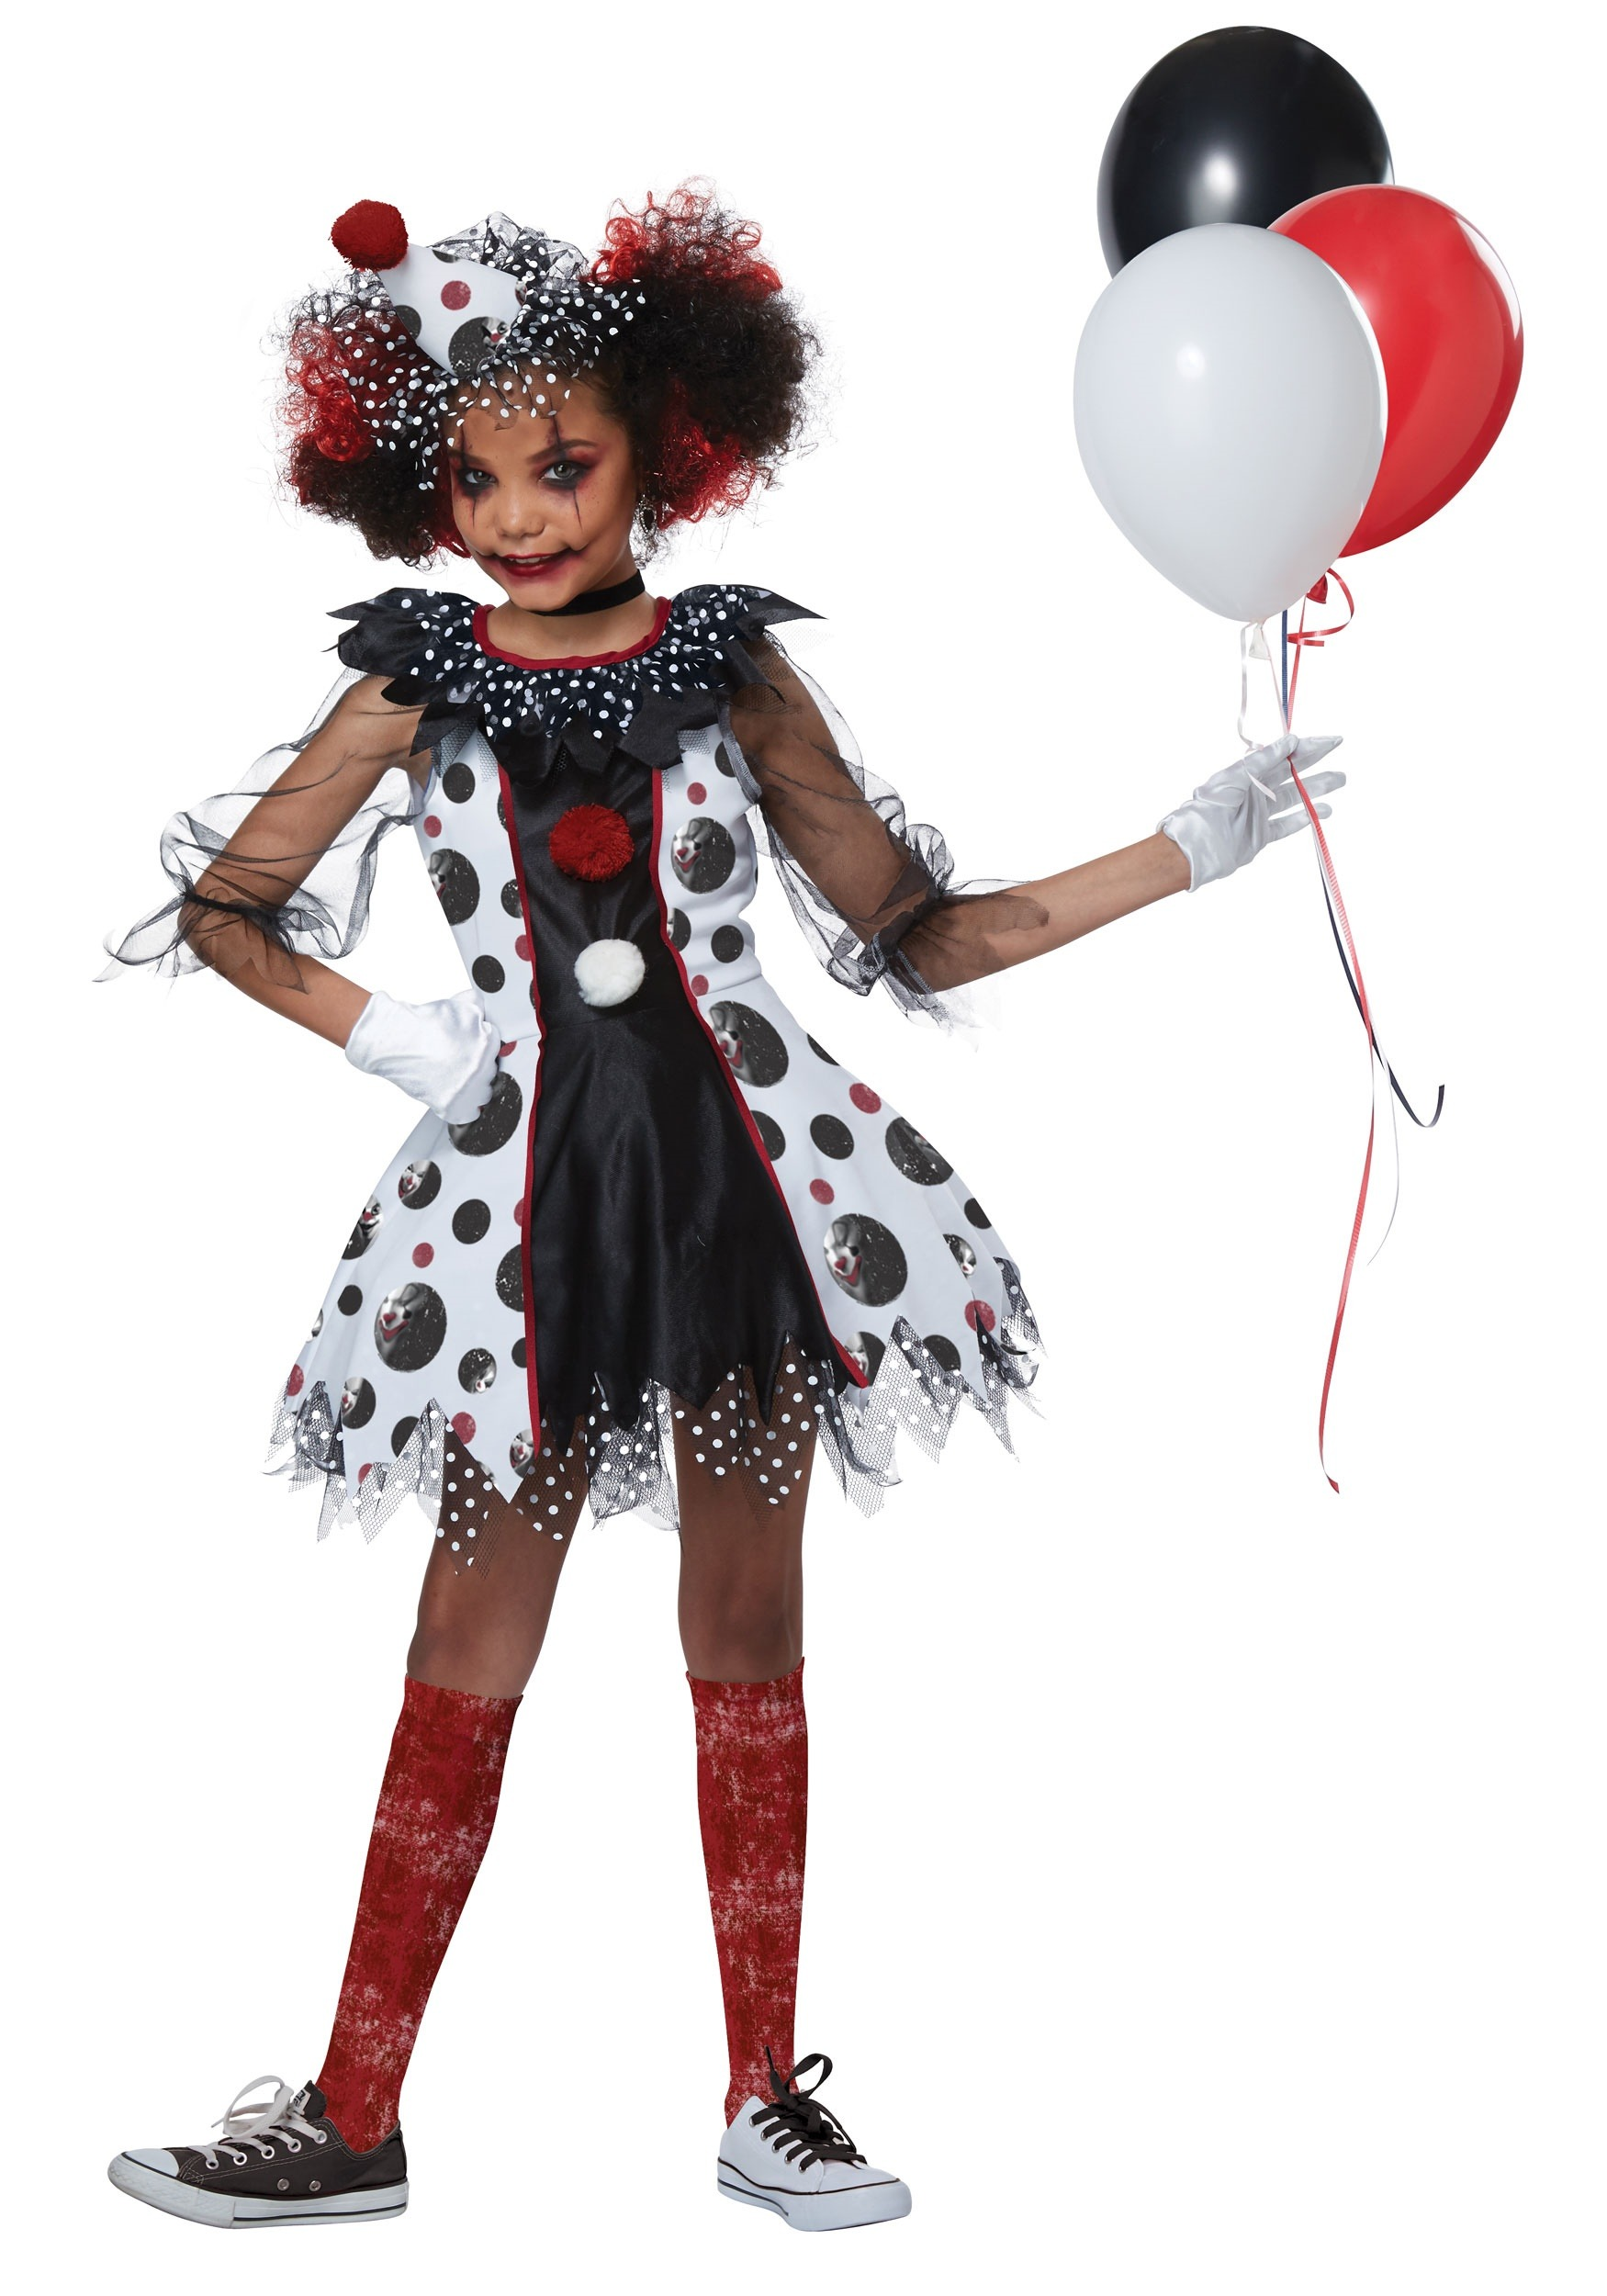 Scary Clown Costume For Girls | www.pixshark.com - Images ...